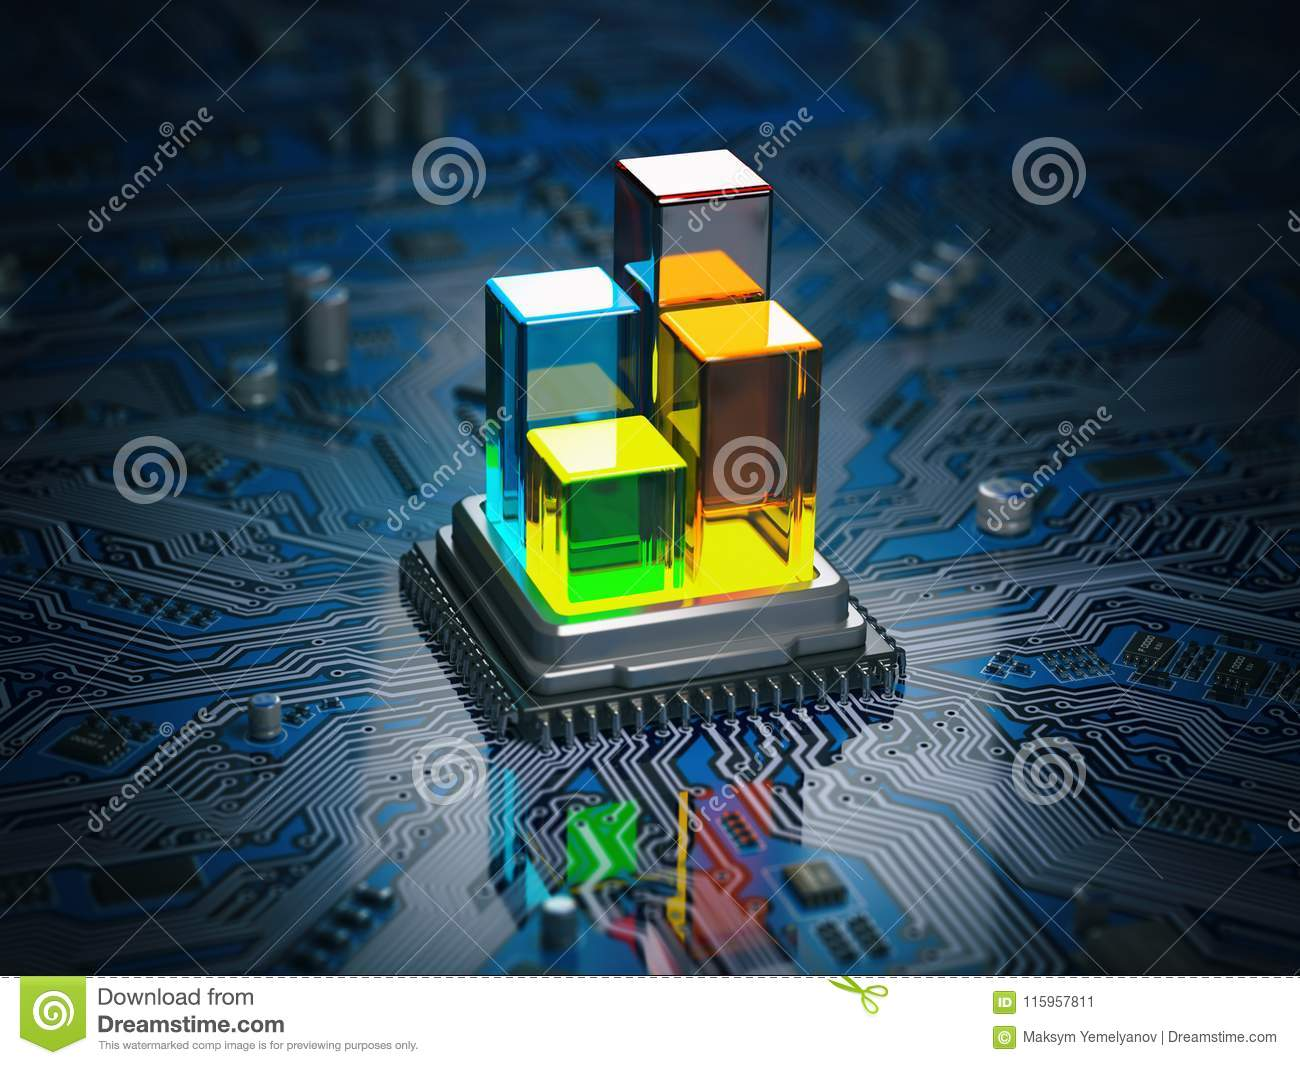 This Is The Processor Board Diagram - Wiring Diagram Shw